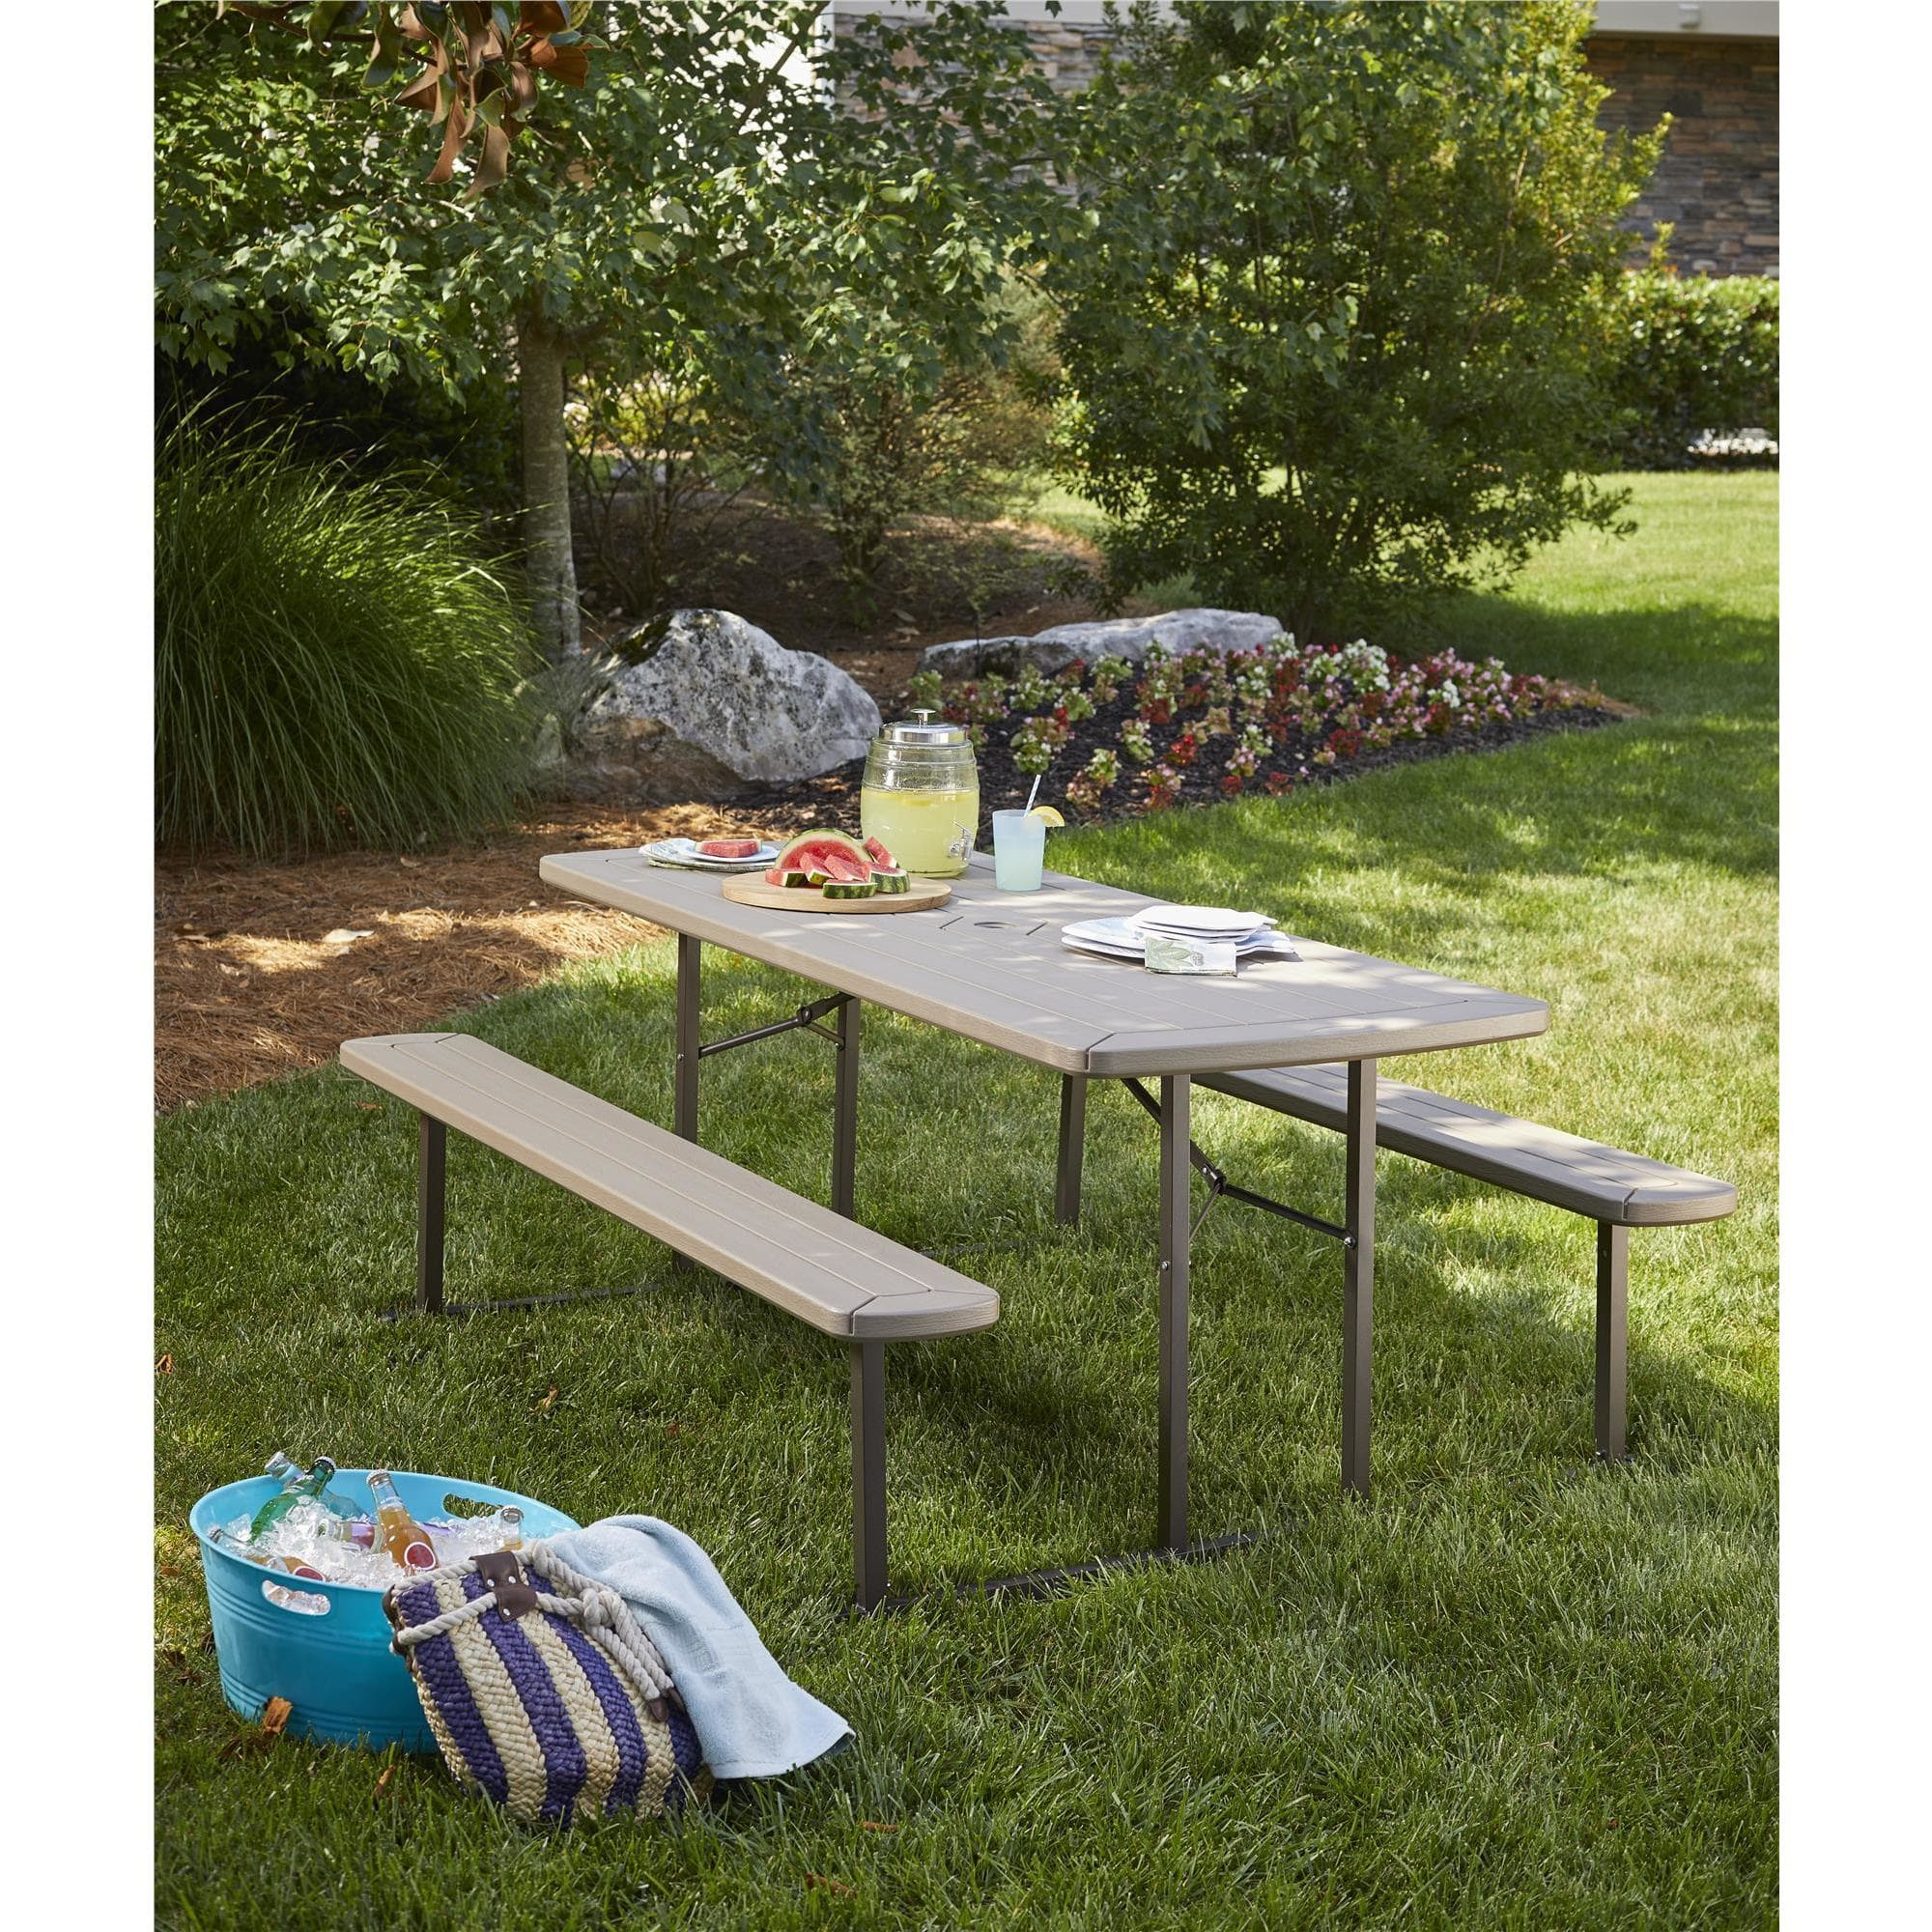 COSCO 6 ft. Folding Blow Mold Picnic Table, Gray Wood Grain with Brown Legs by Cosco